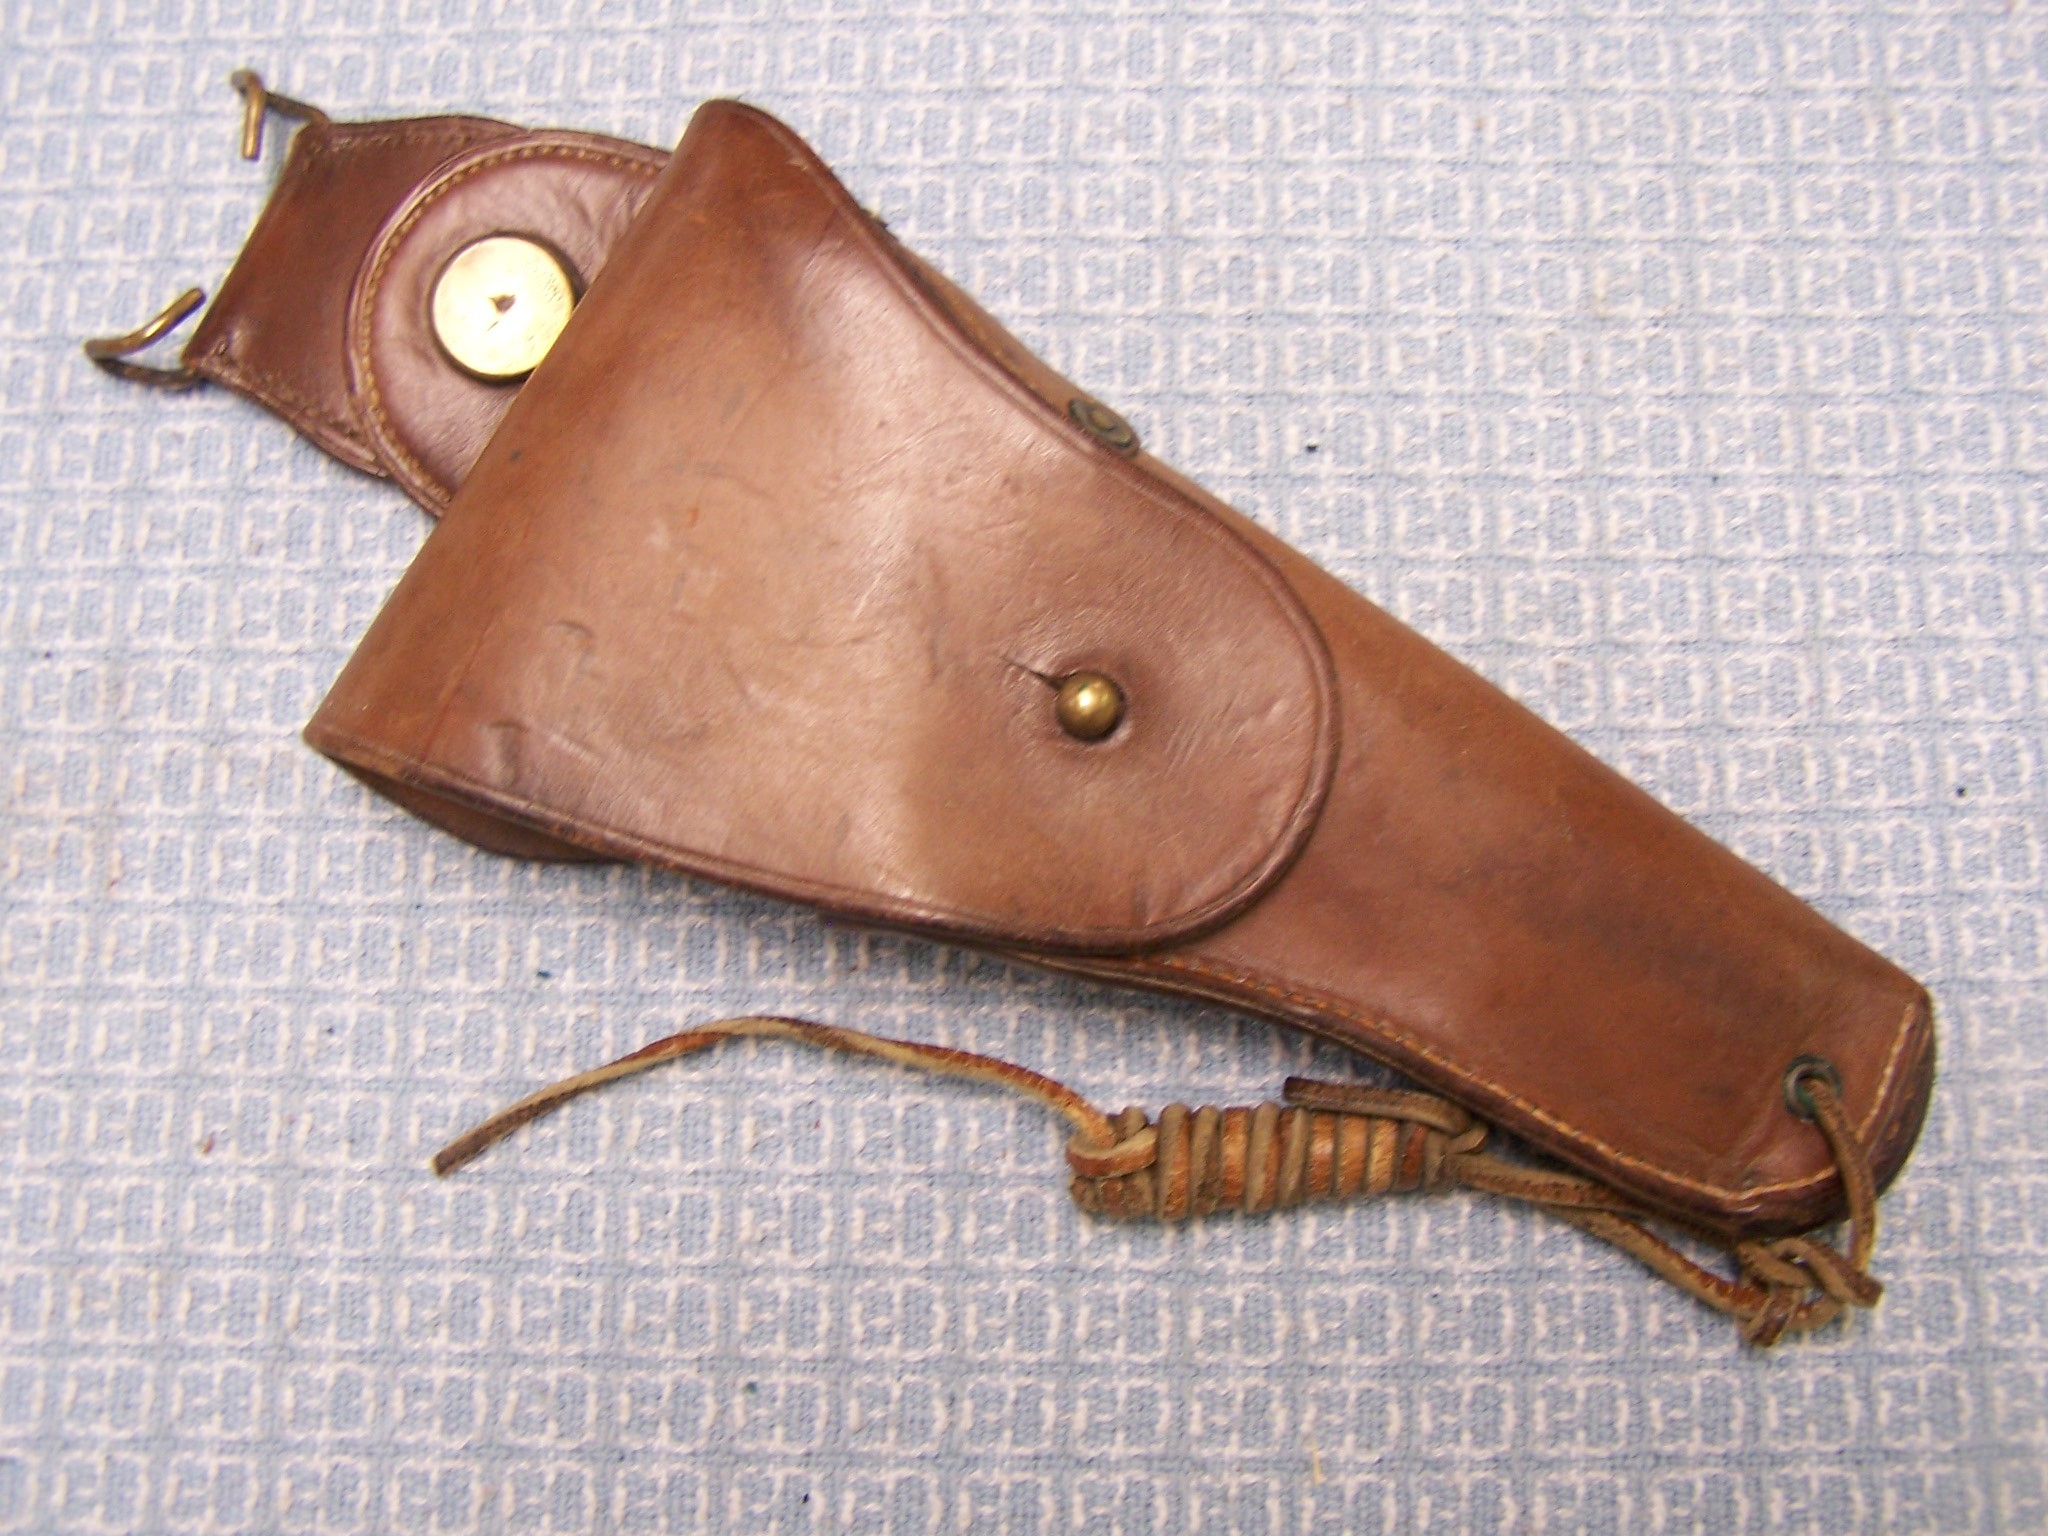 COLT 1911 M1912 CAVALRY R.I.A. 1917 BROWN HOLSTER